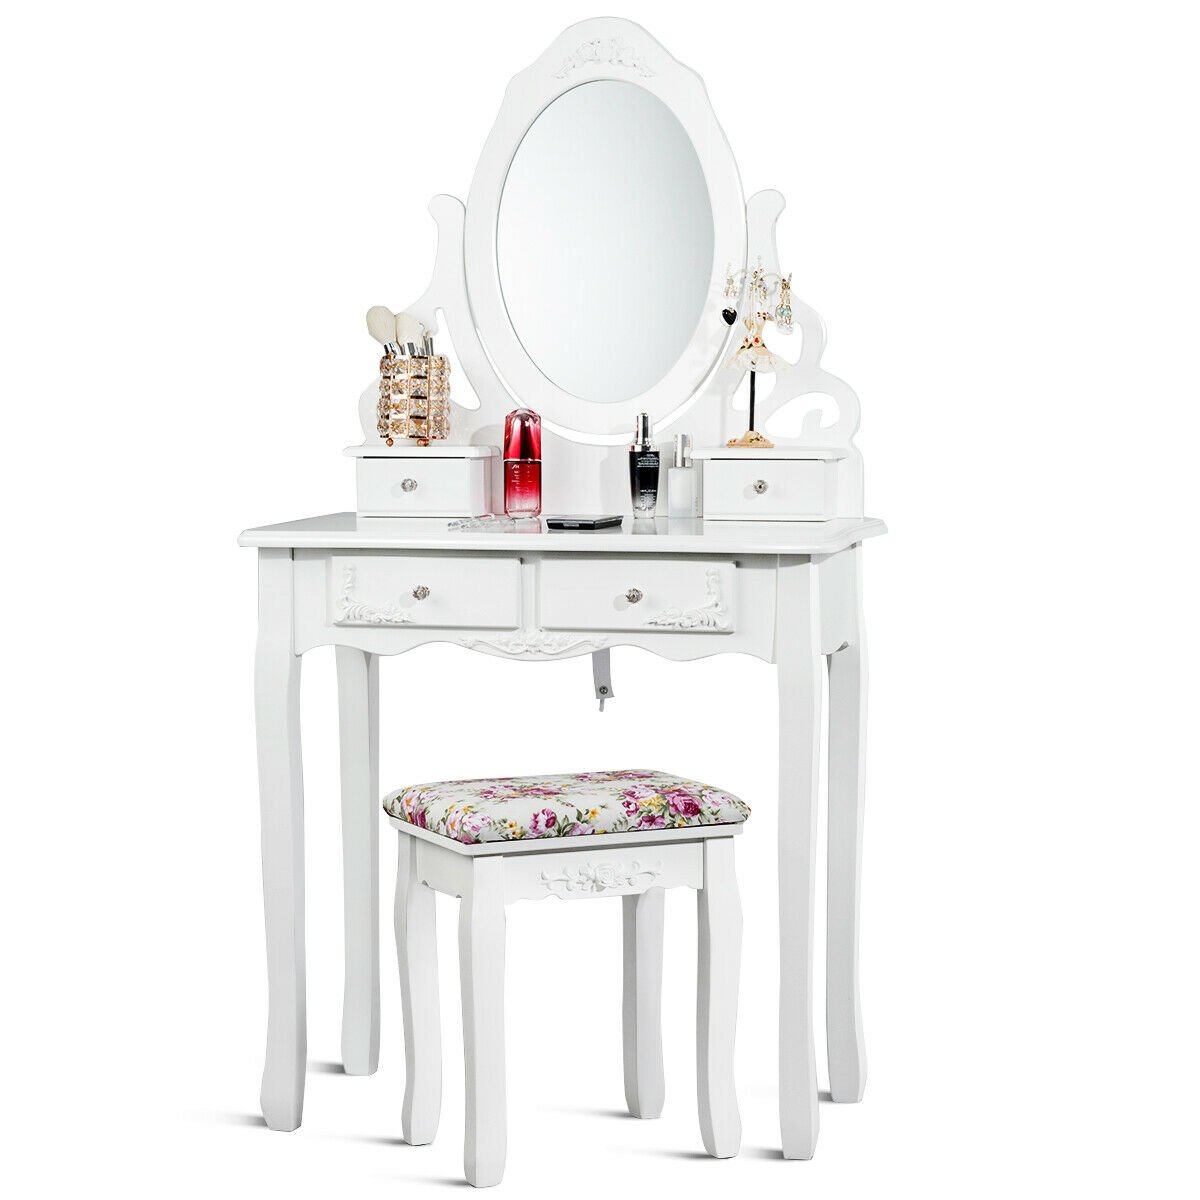 Pleasant Gymax Bathroom Wood Vanity Makeup Dressing Table Stool Set White Andrewgaddart Wooden Chair Designs For Living Room Andrewgaddartcom